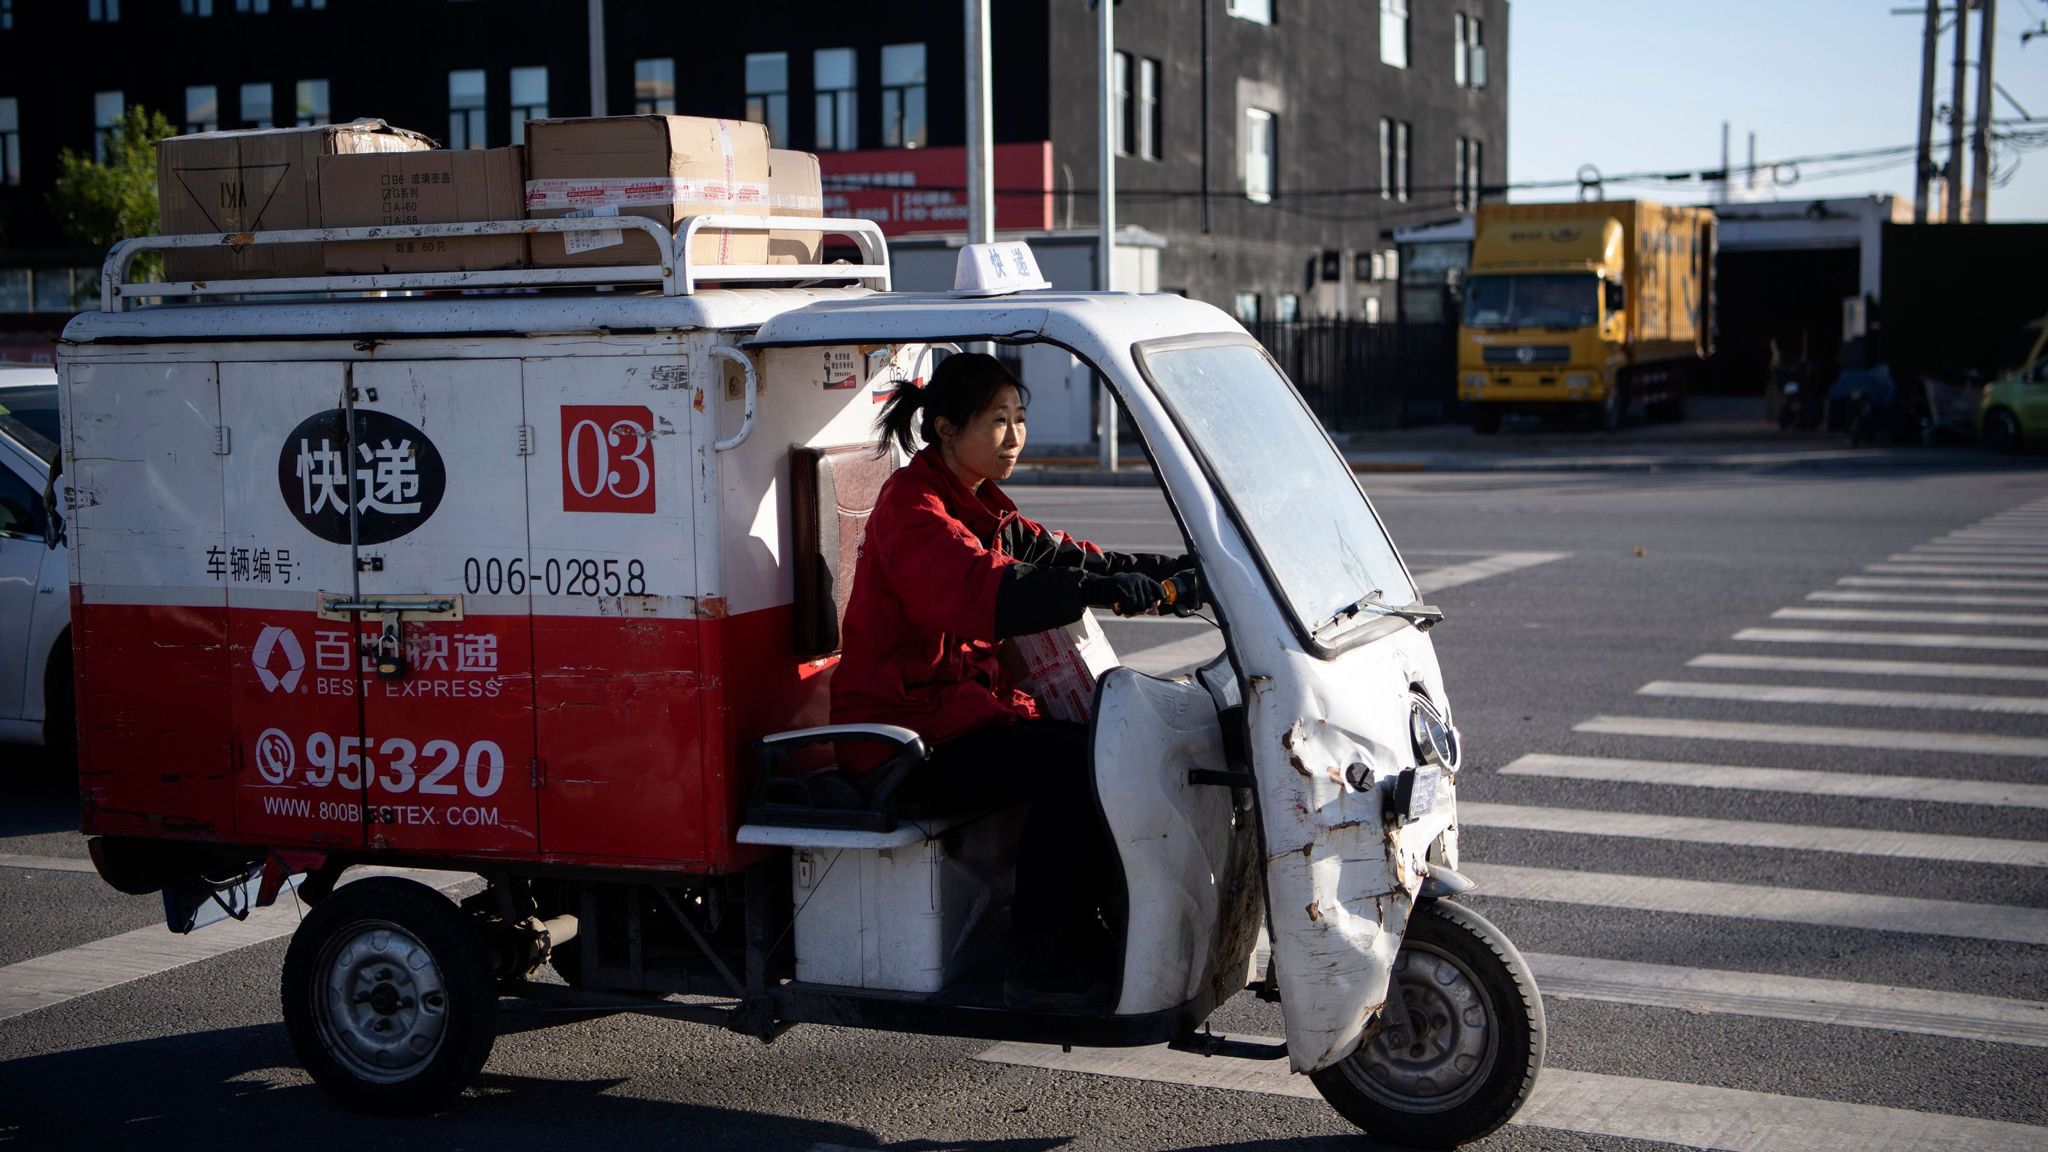 Alibaba aims to deliver with $16bn courier venture